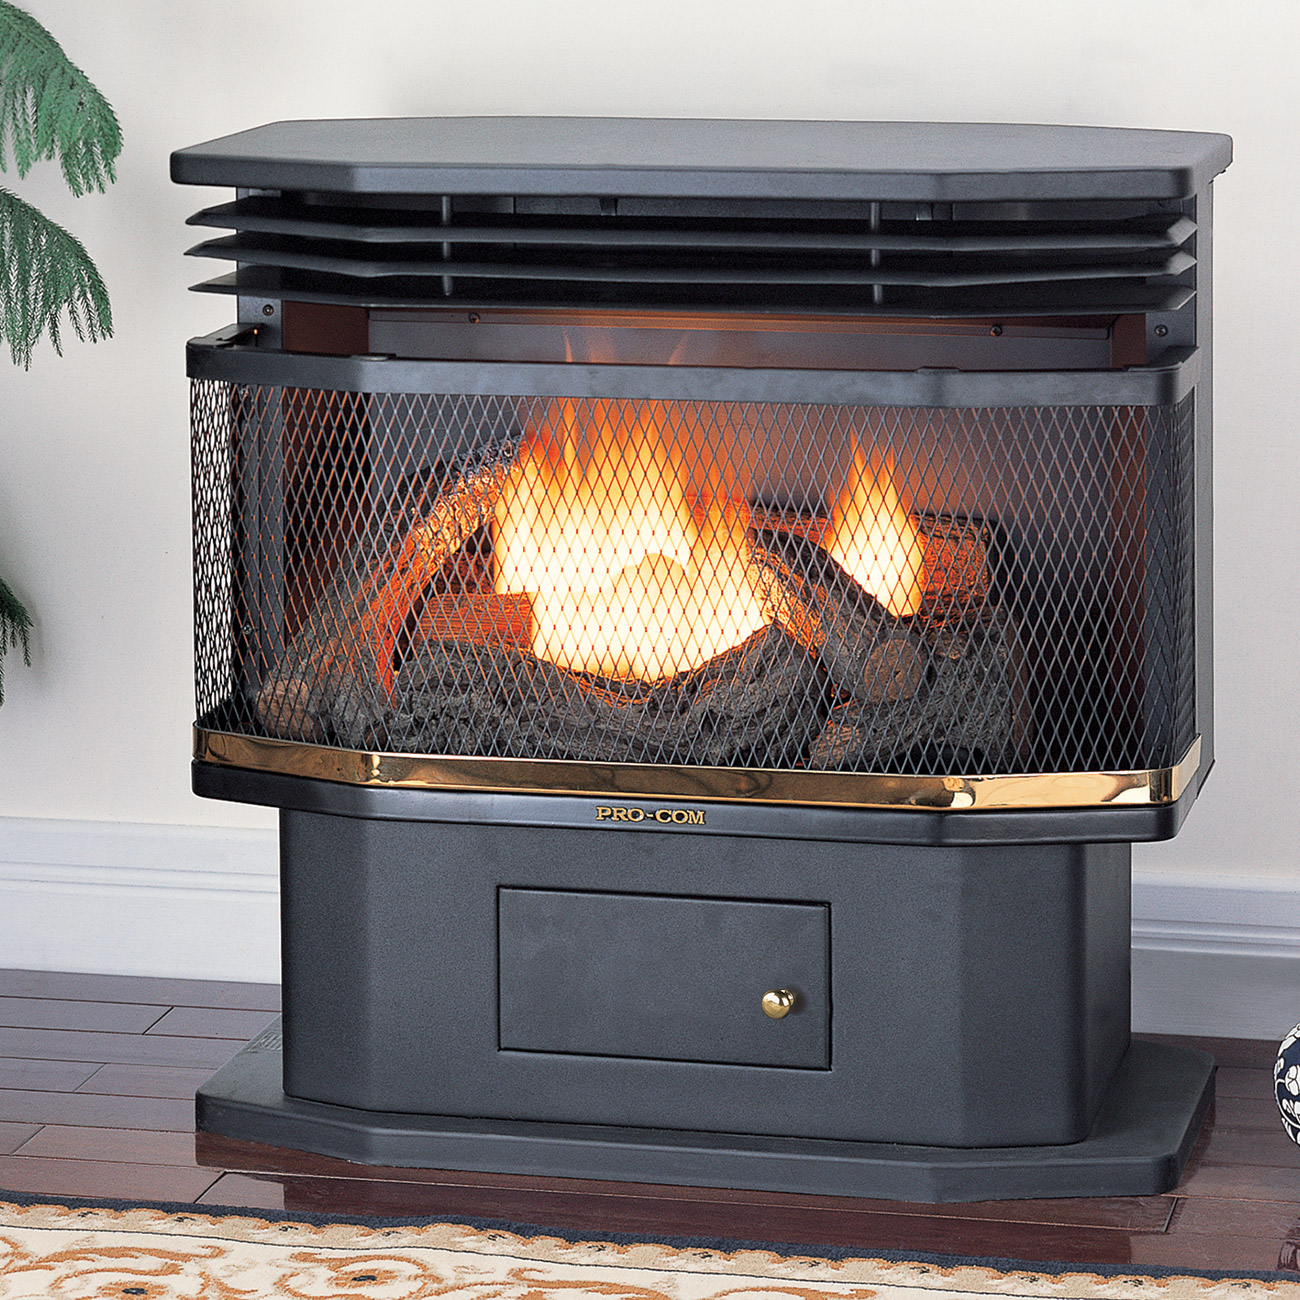 Procom Ventless Fireplace